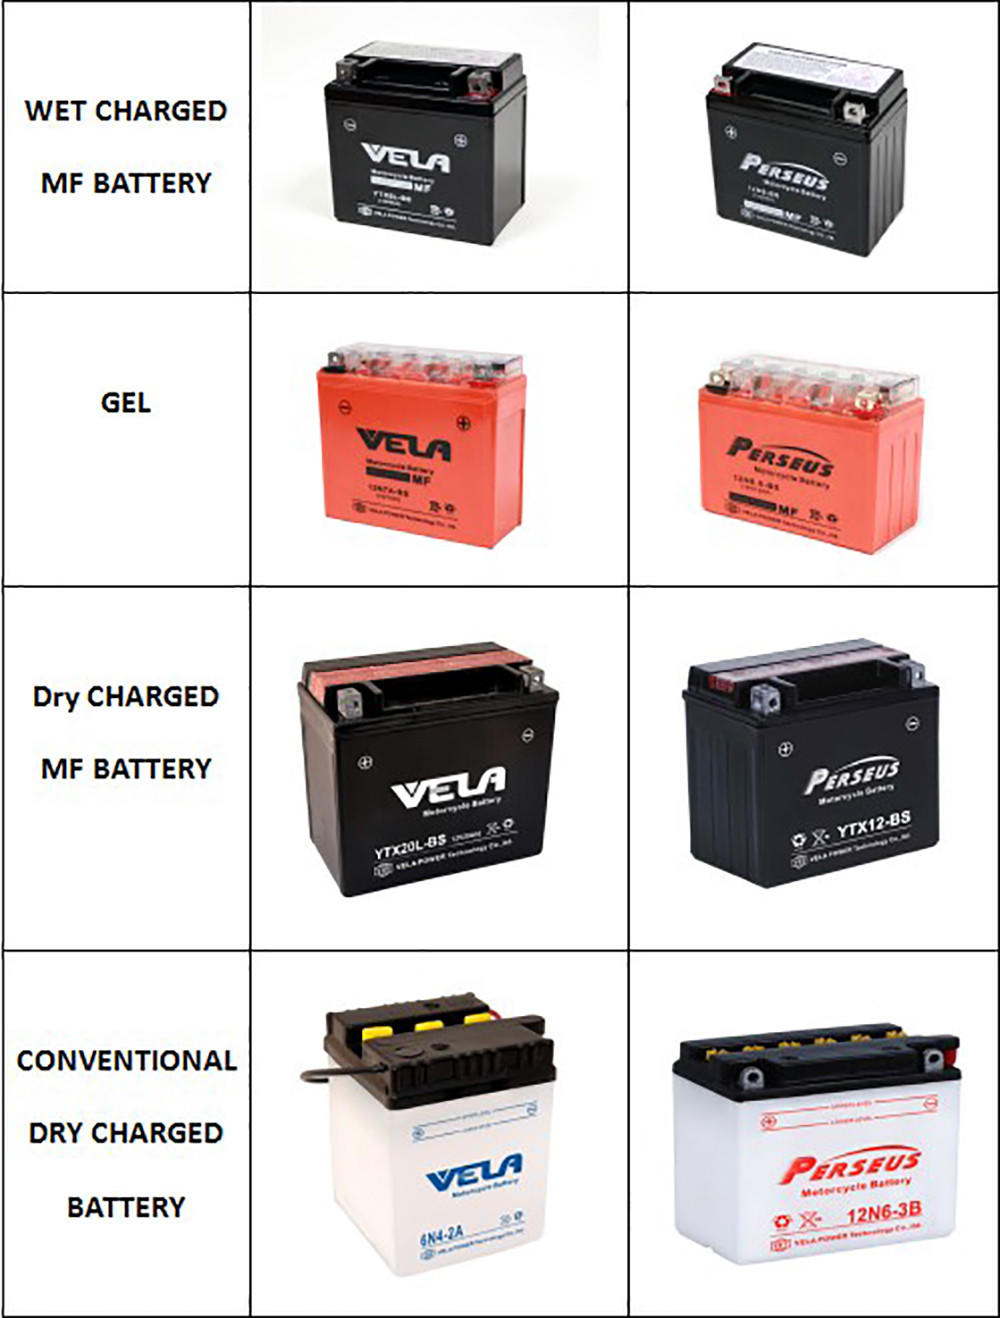 VELA high performance gel battery ideal for motorcycle industry-2